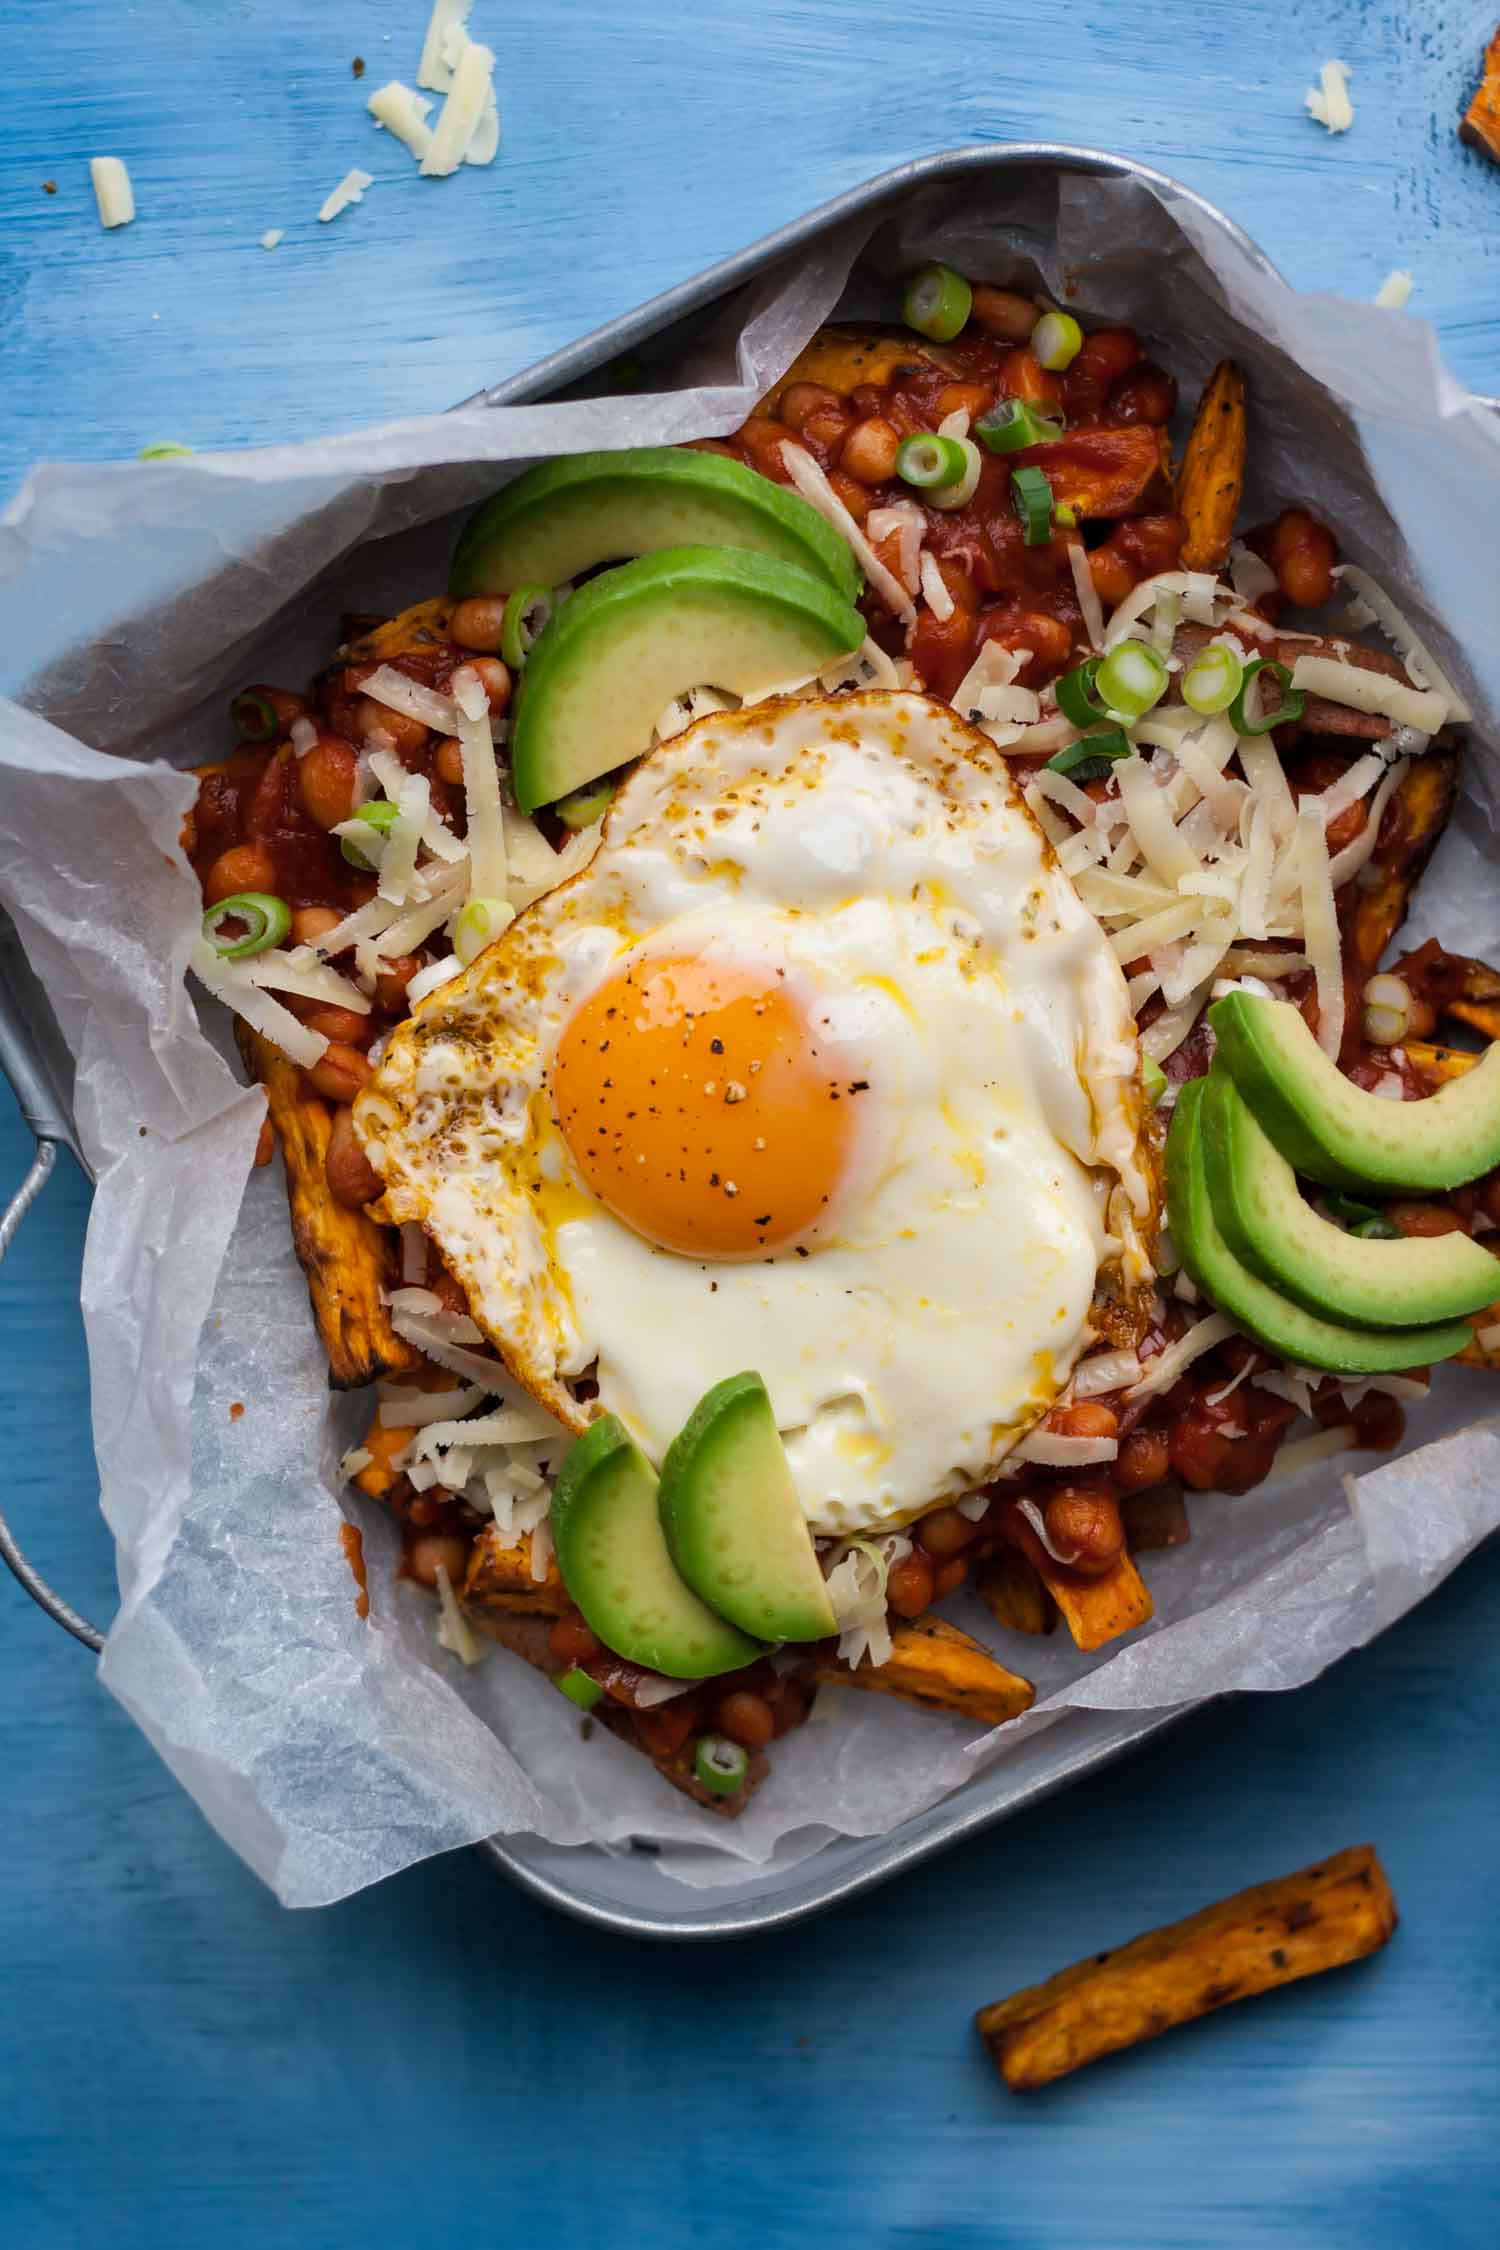 Loaded Sweet Potato Fries - these loaded sweet potato fries are topped with the most delicious, quick and easy smoky beans!   eatloveeats.com